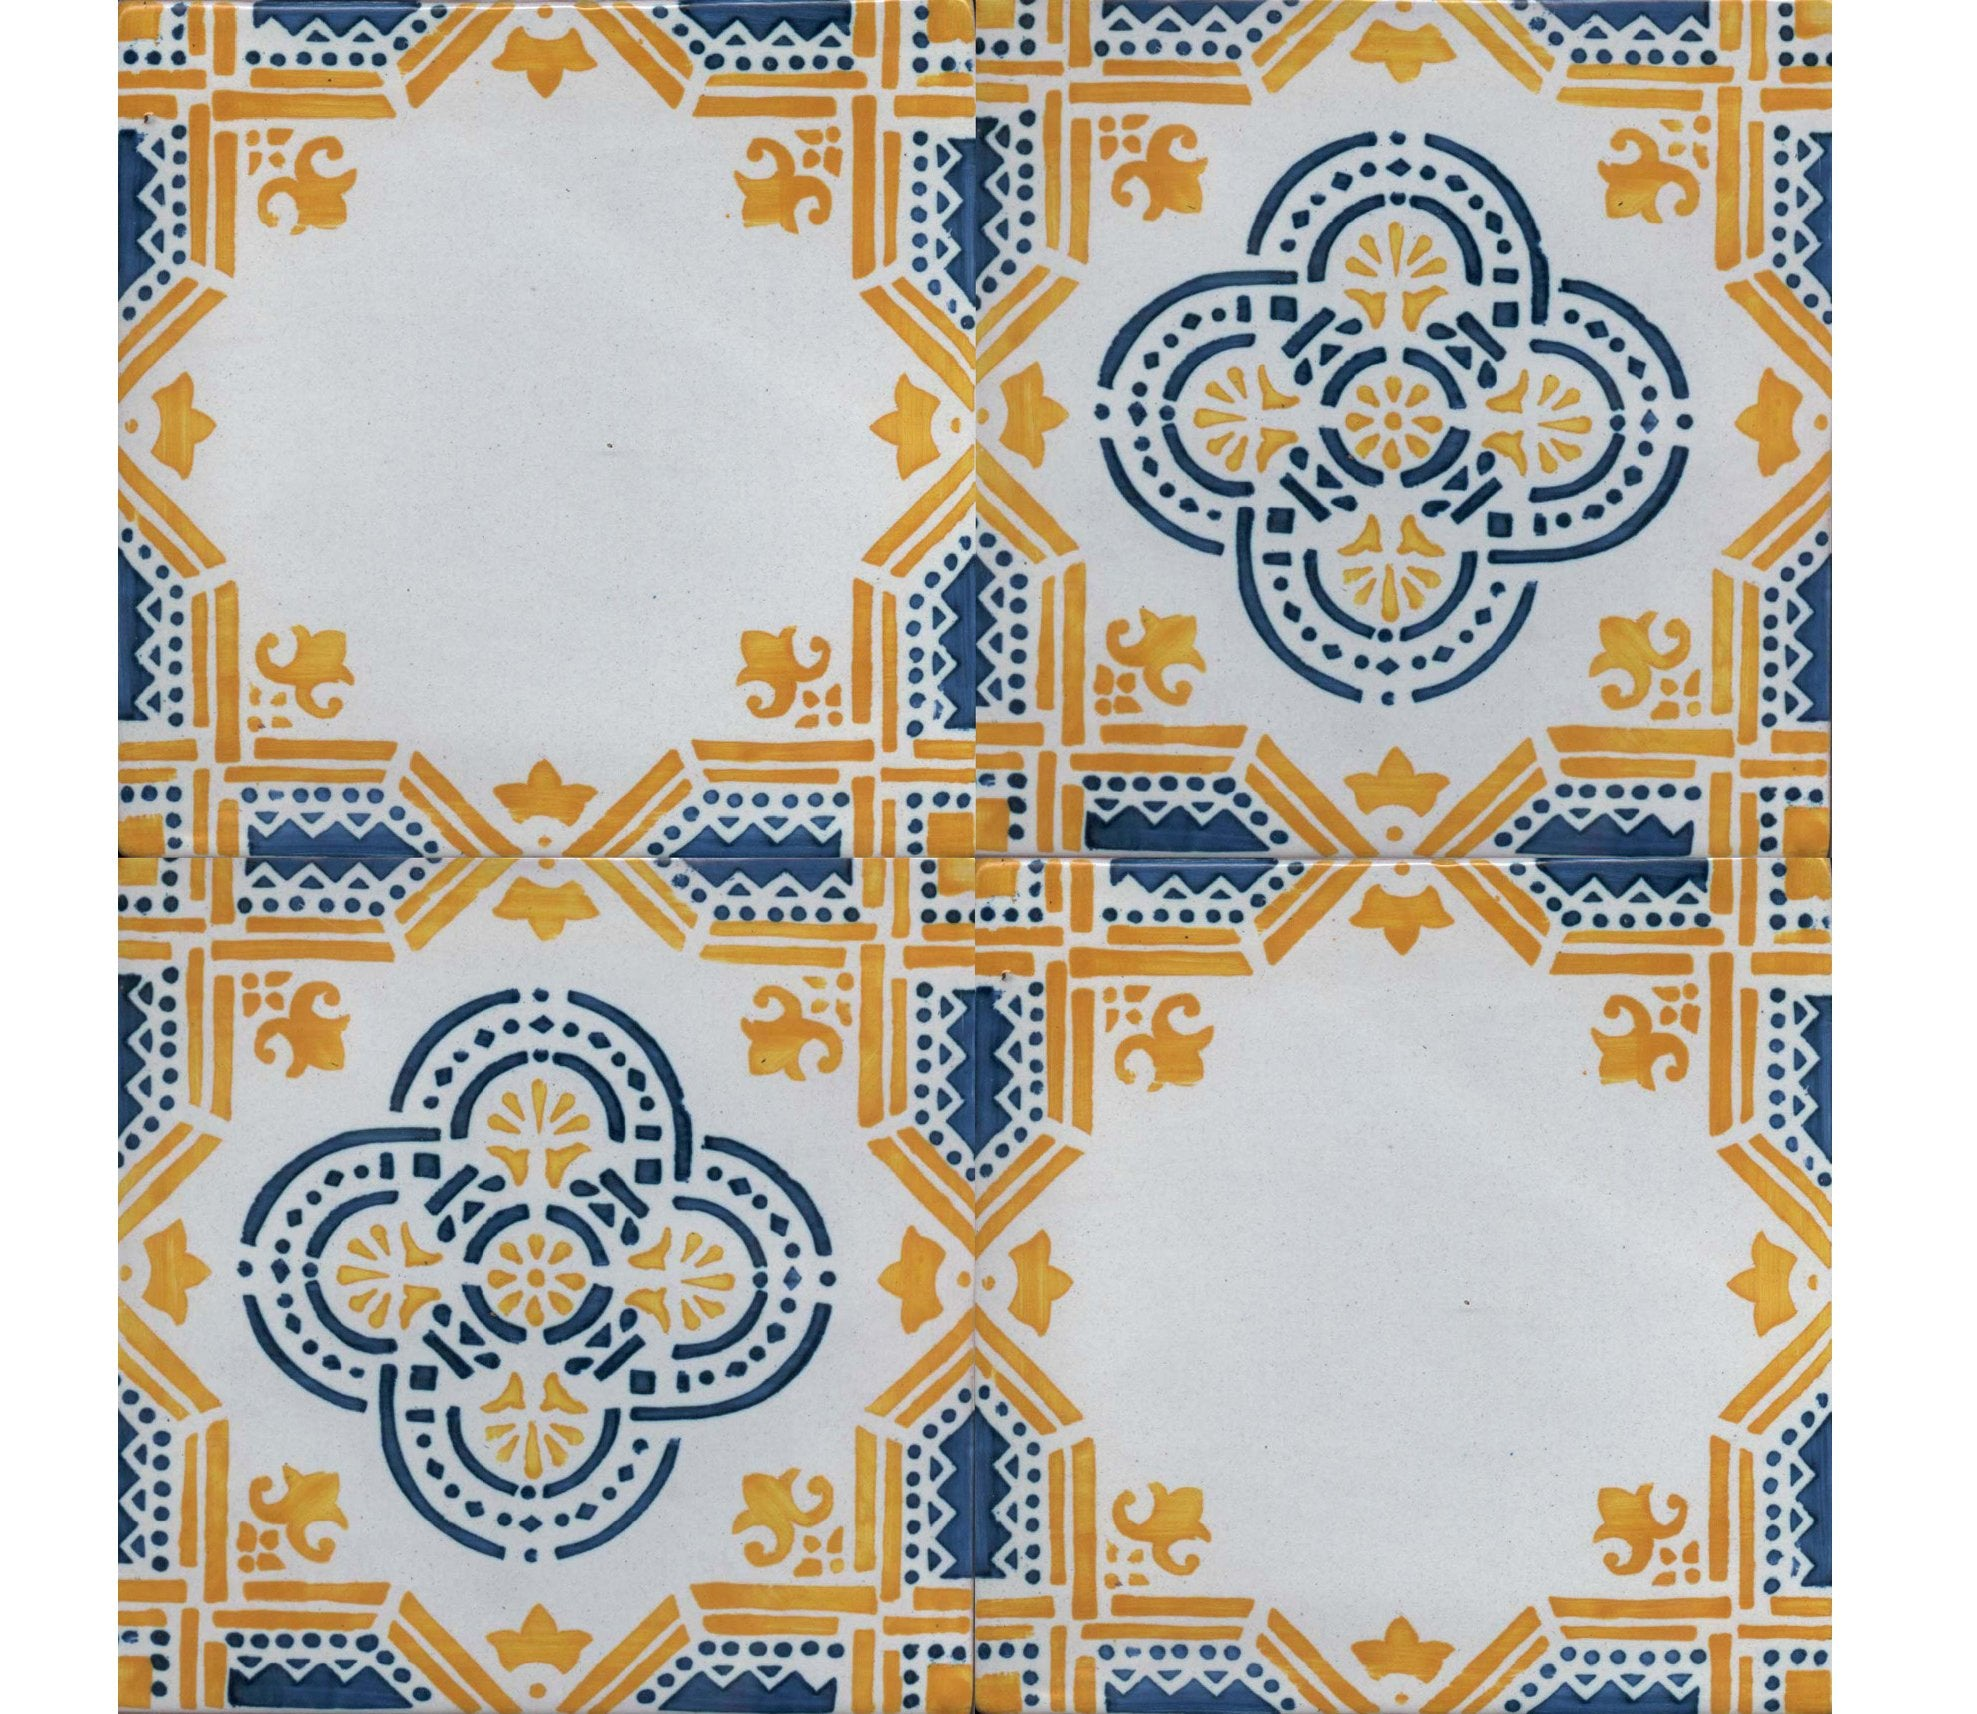 Series S Handpainted Tiles Product Image 28